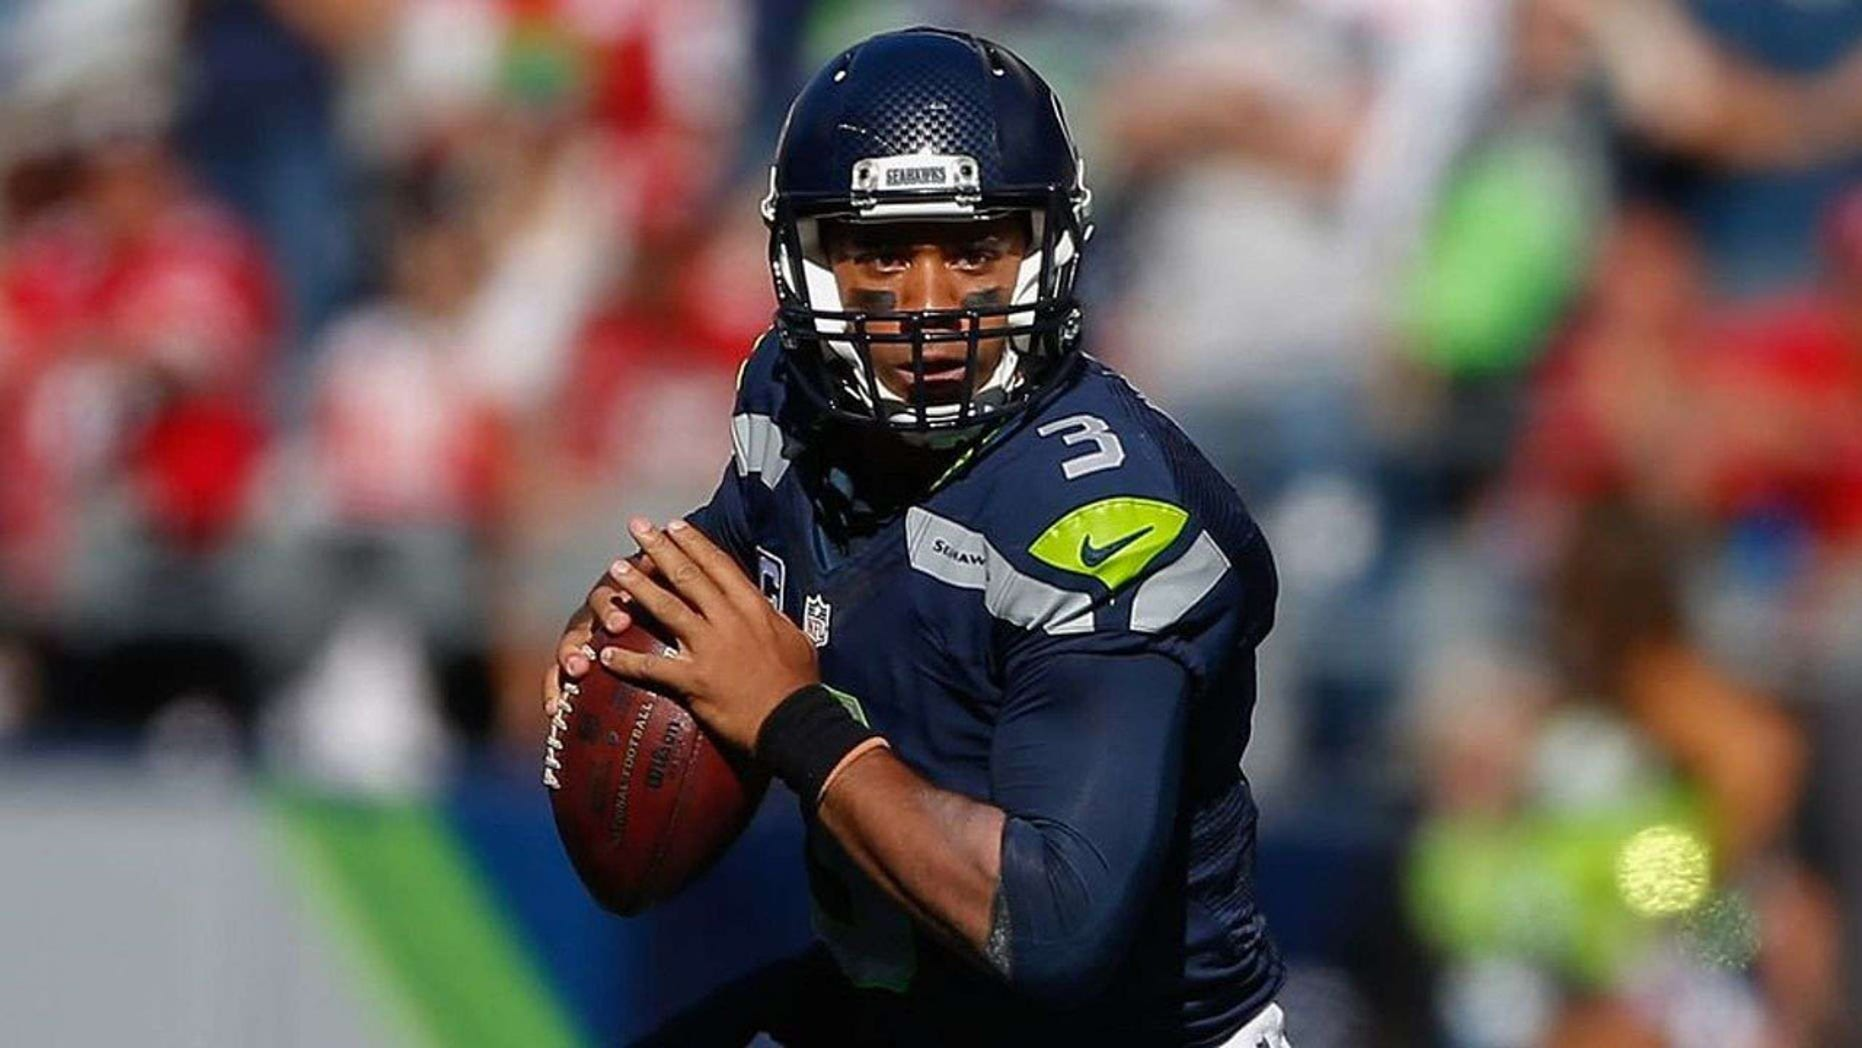 Russell Wilson has been with the Seahawks since 2012. (Getty Images)